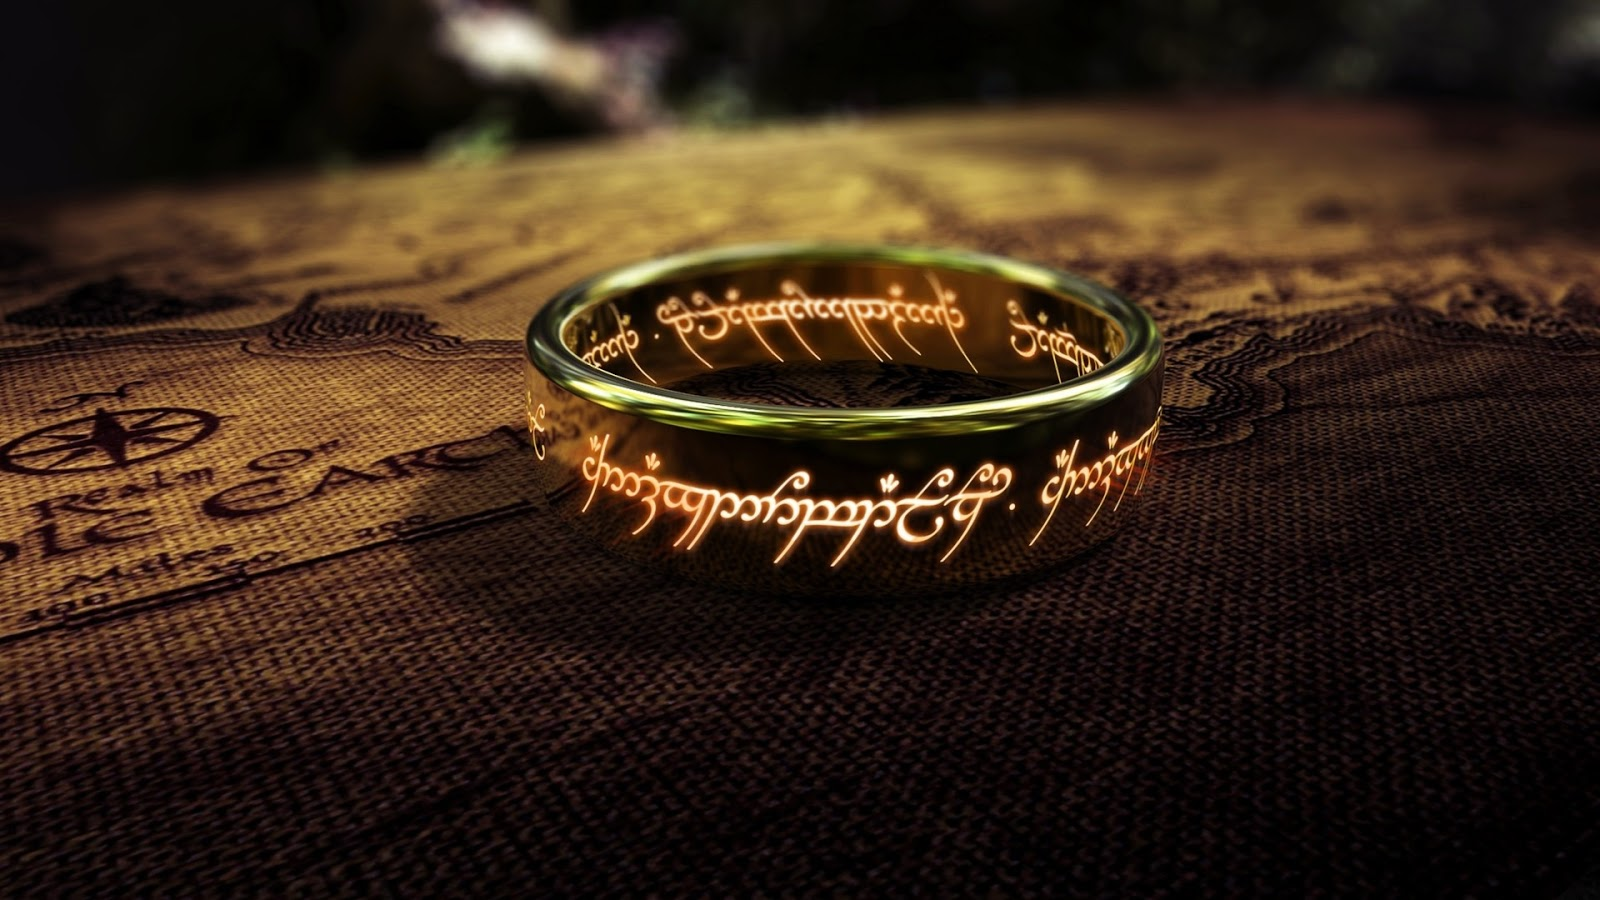 The Lord Of The Rings Wallpaper | Covers Heat